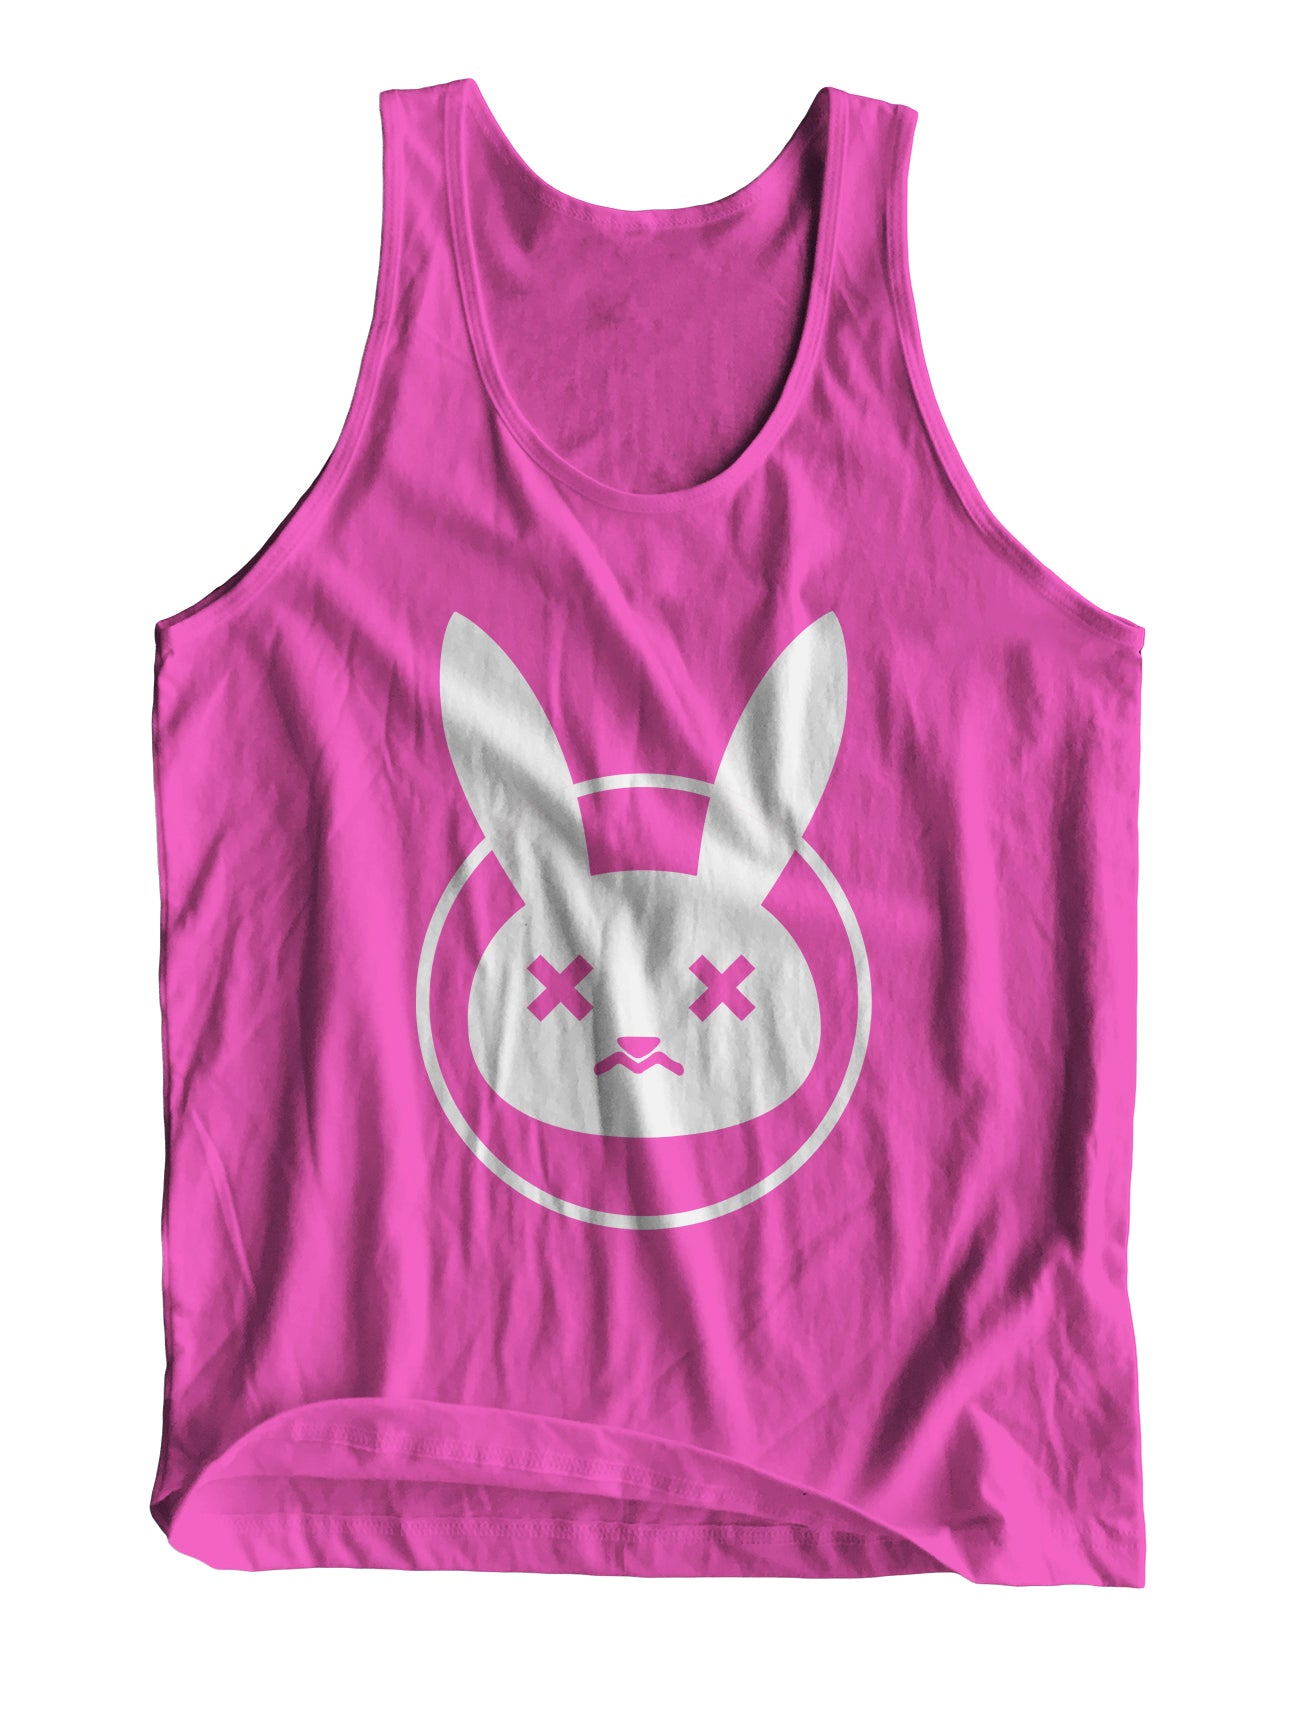 Nerf Bunny Tank Top in Pink